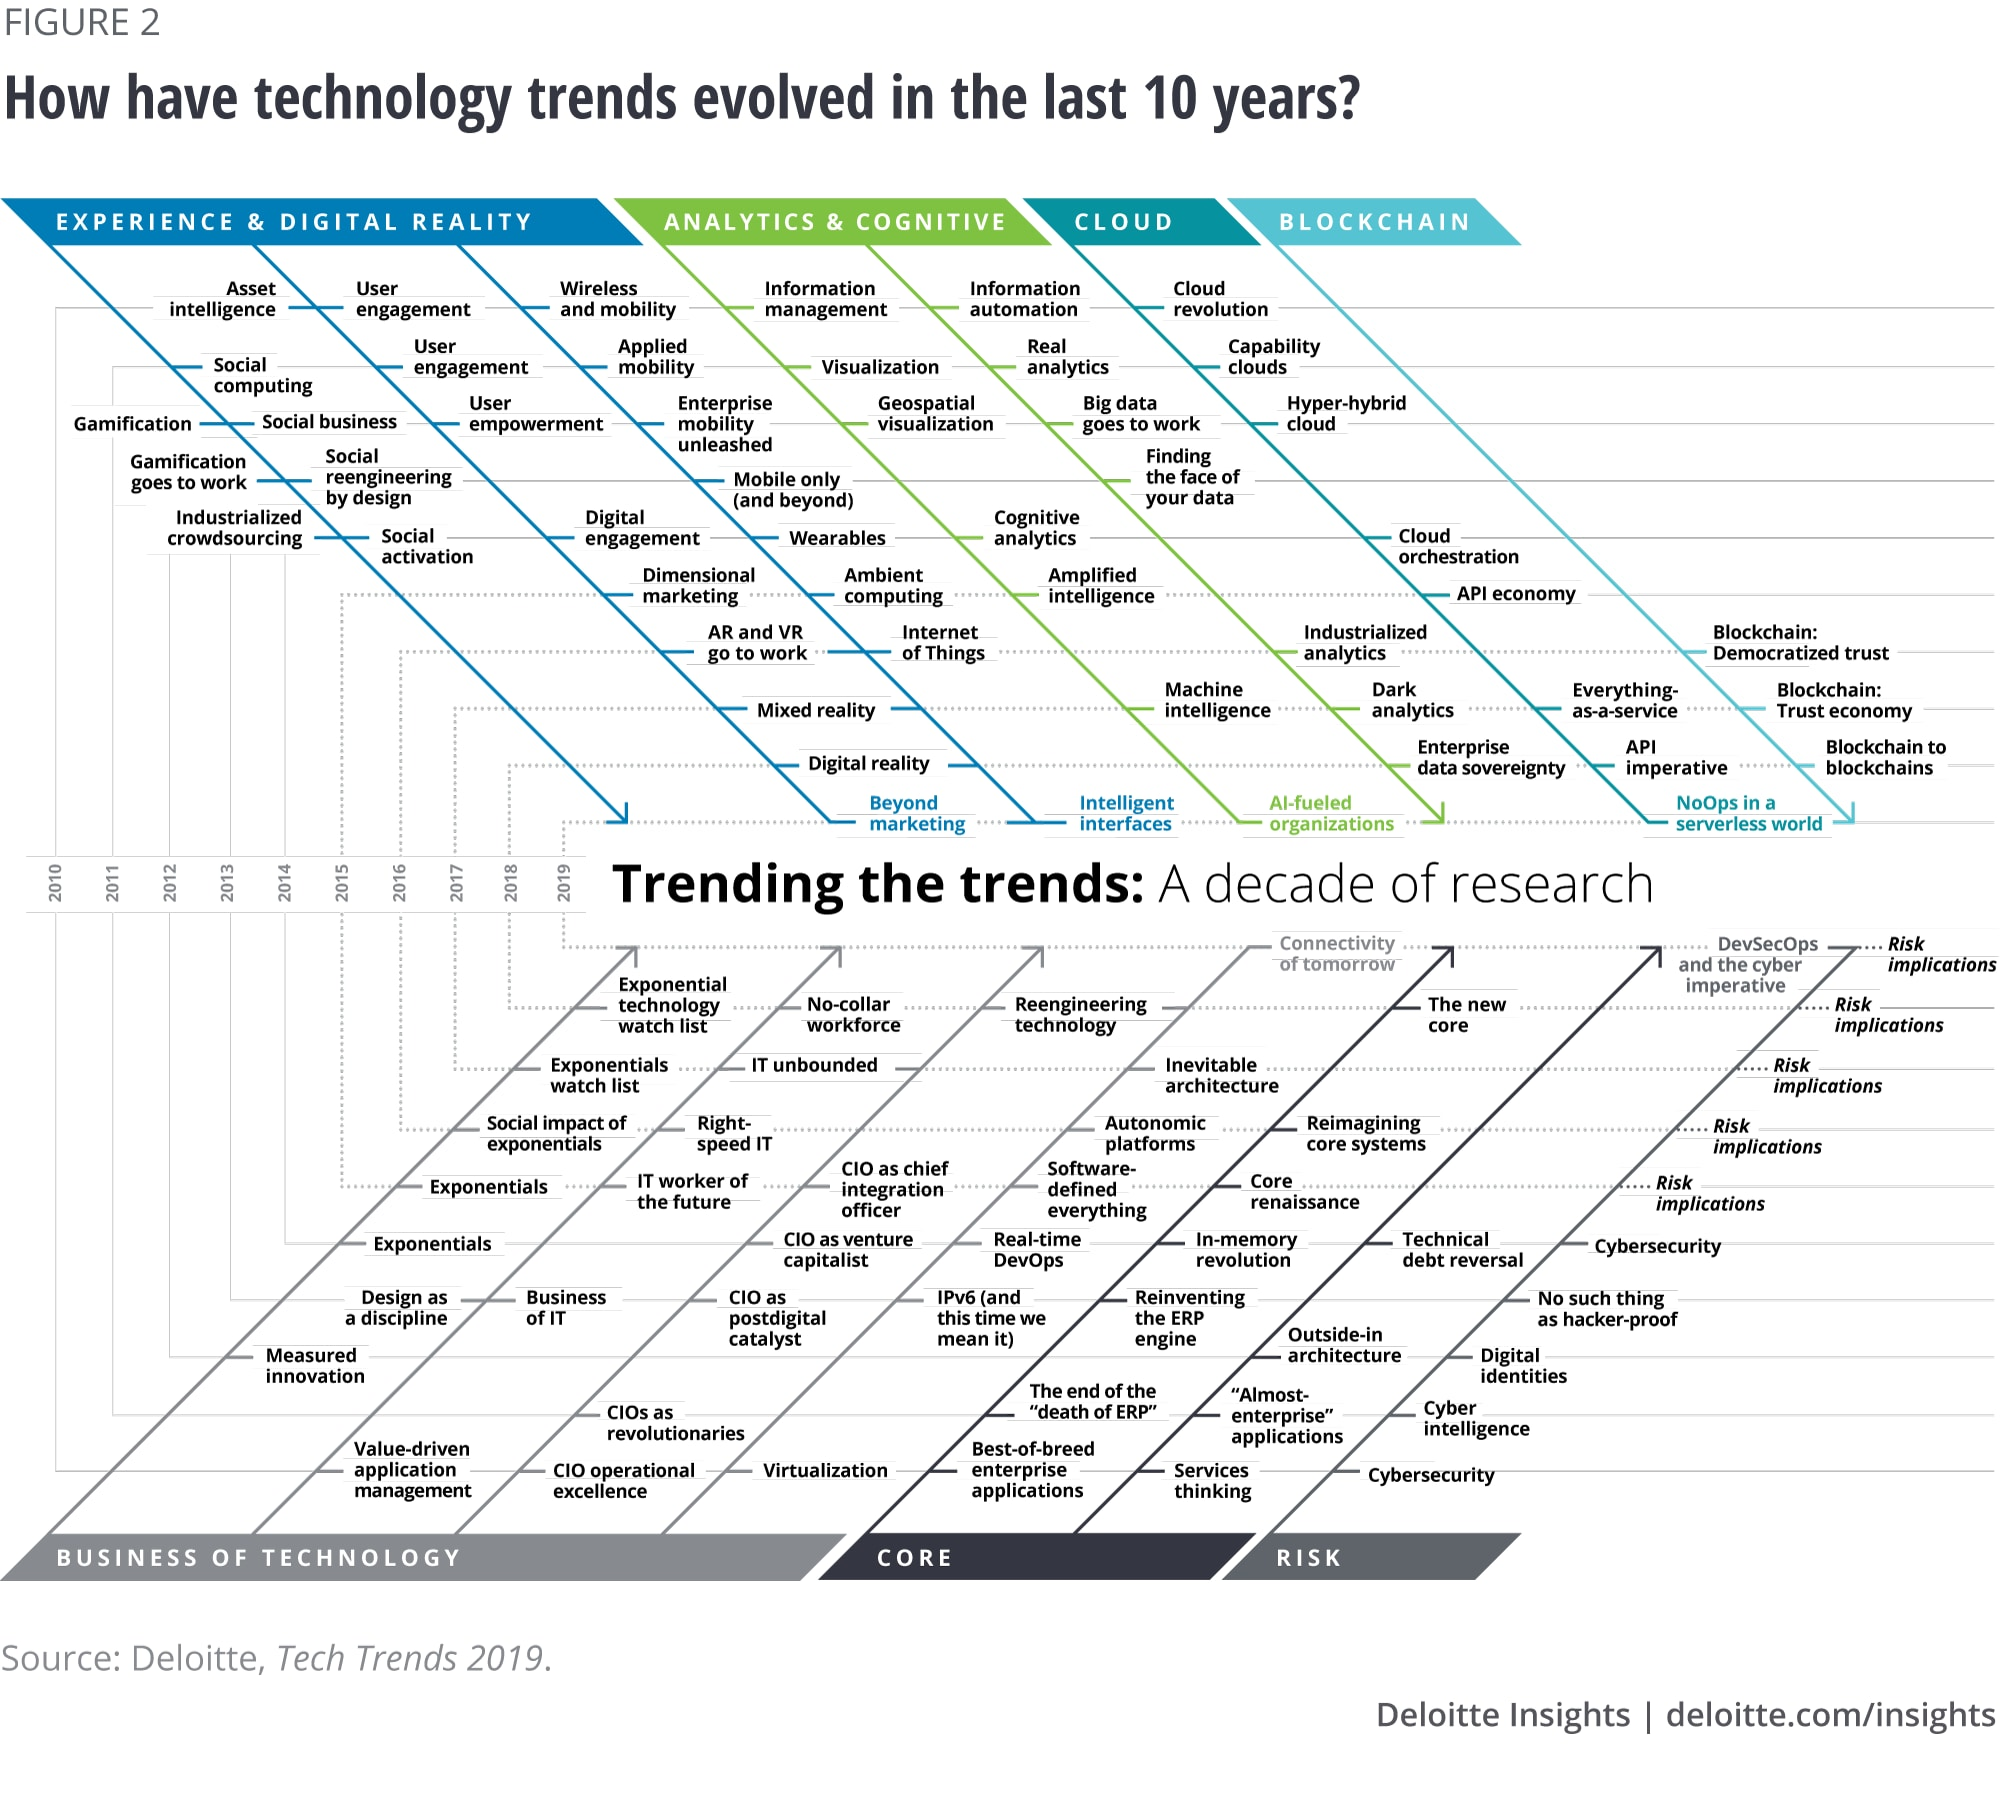 How have technology trends evolved in the last 10 years?